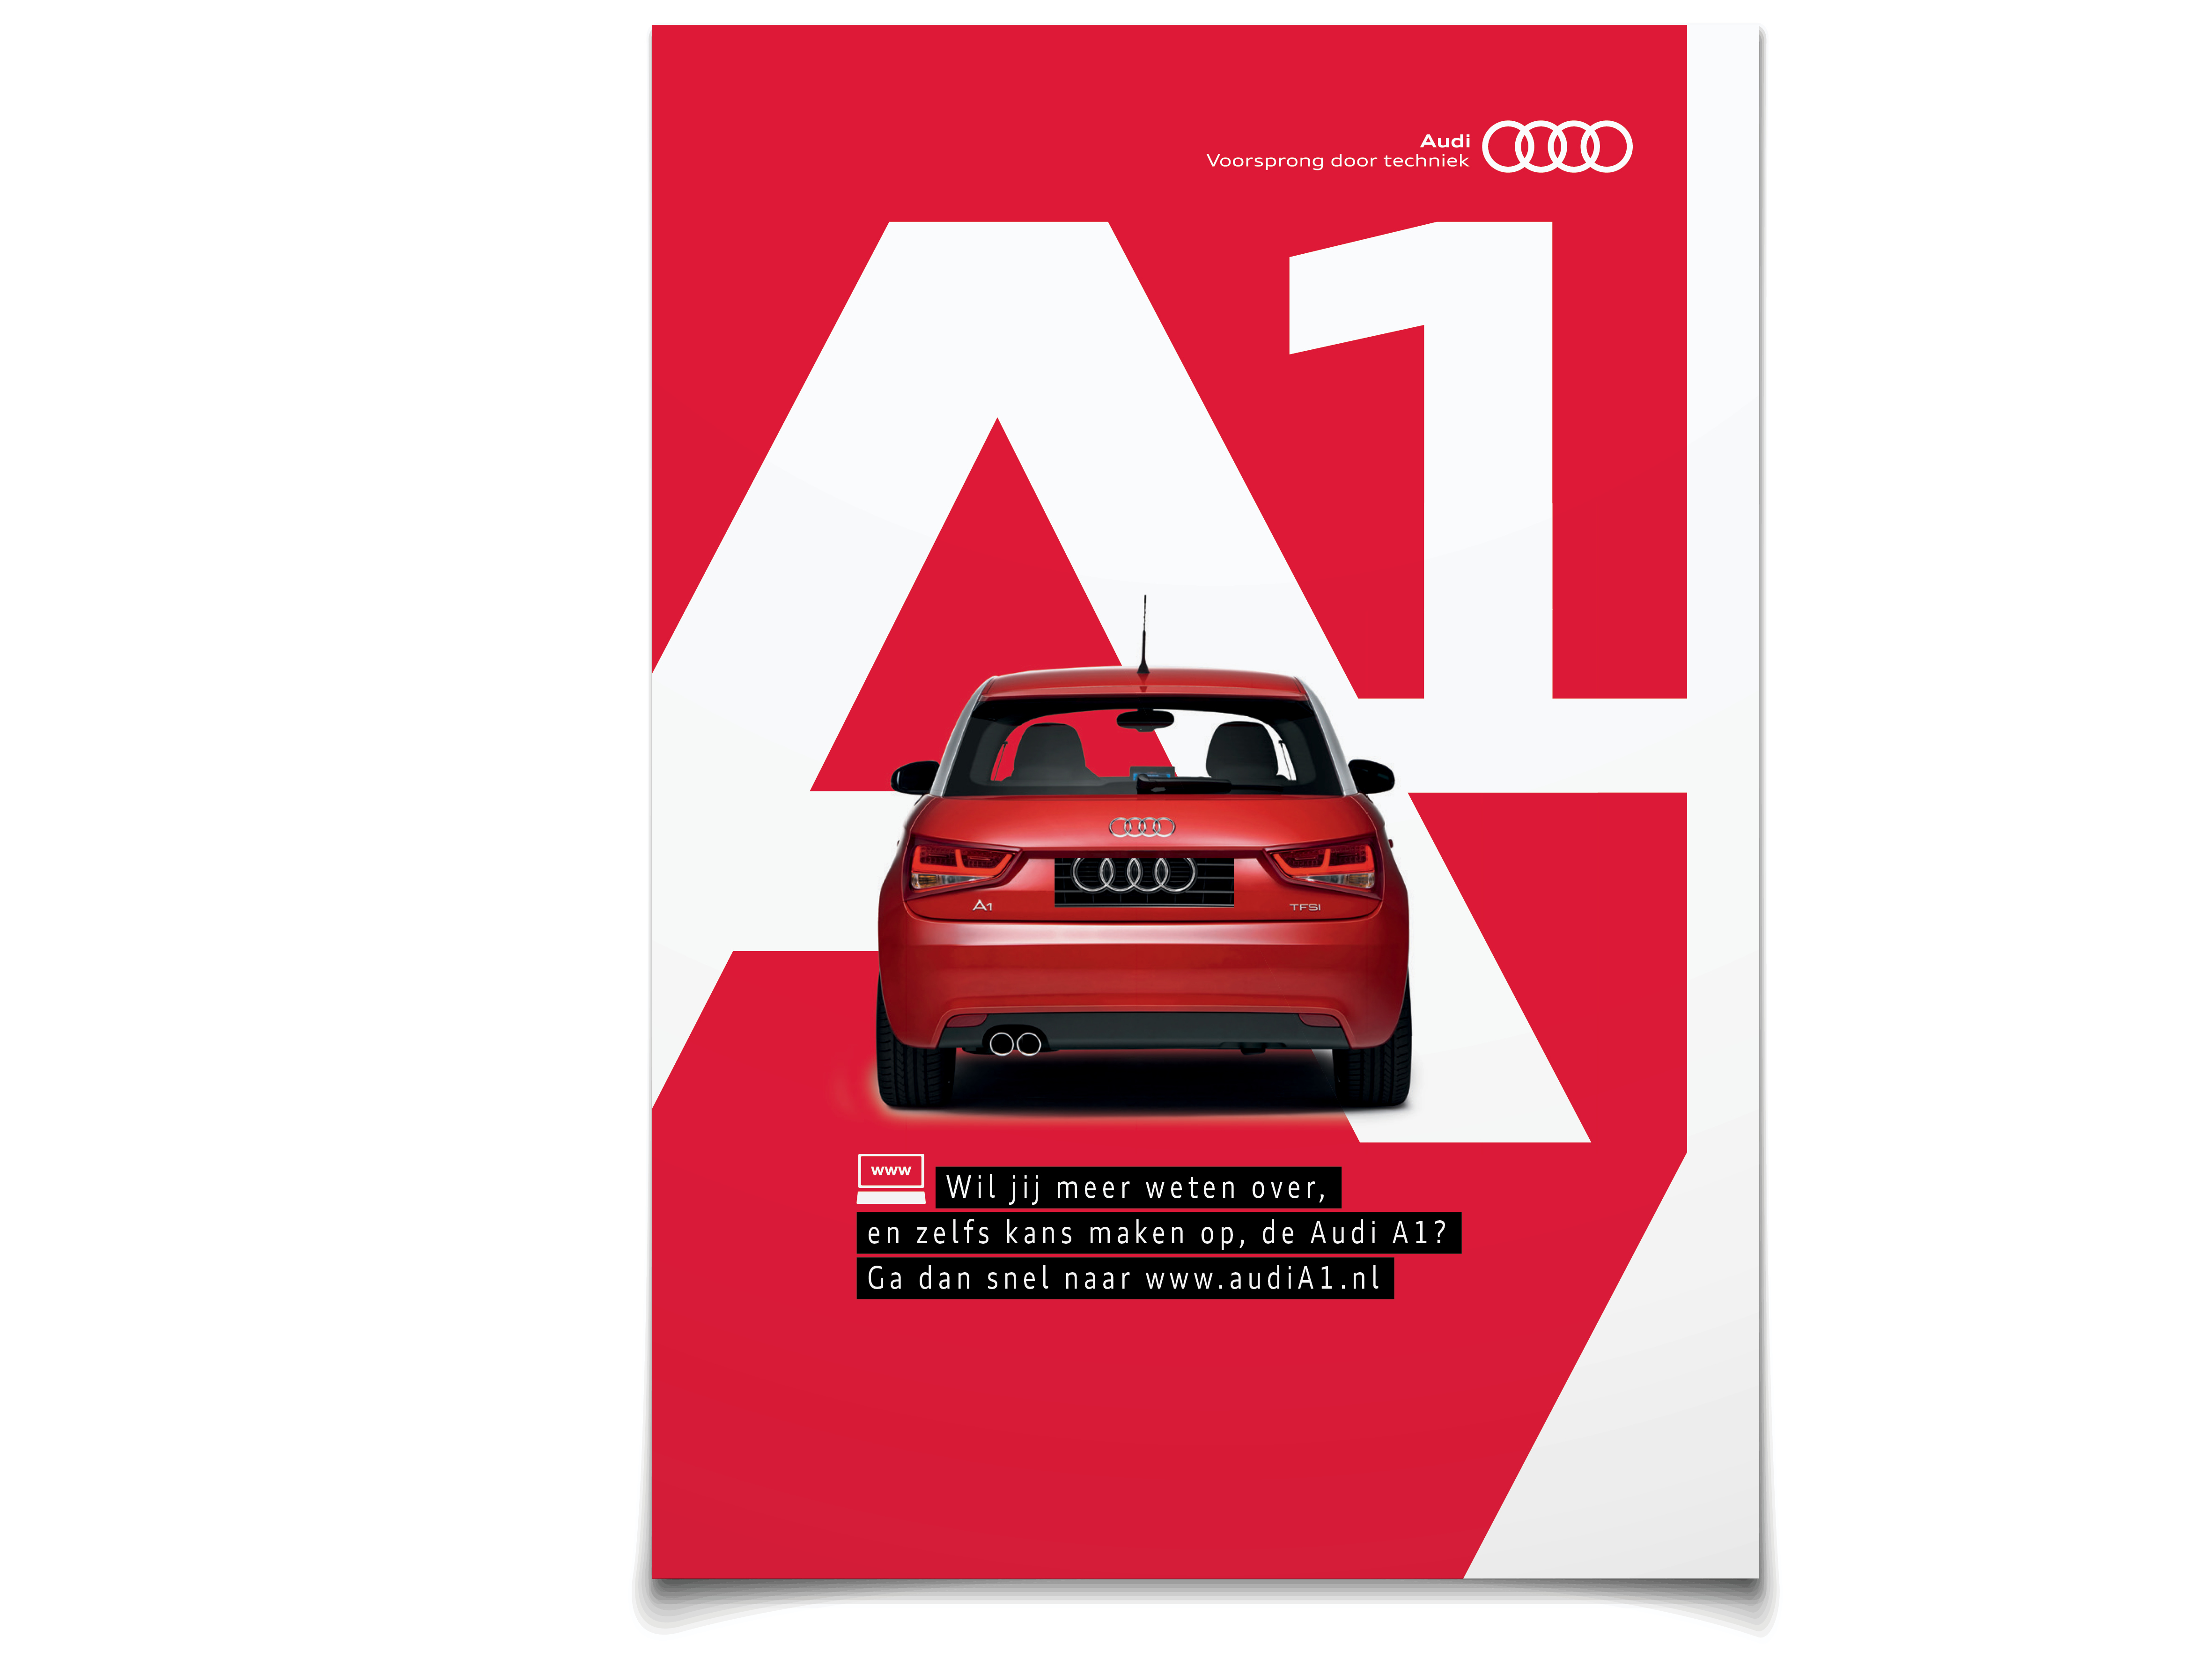 AUDI The next big thing 12/12